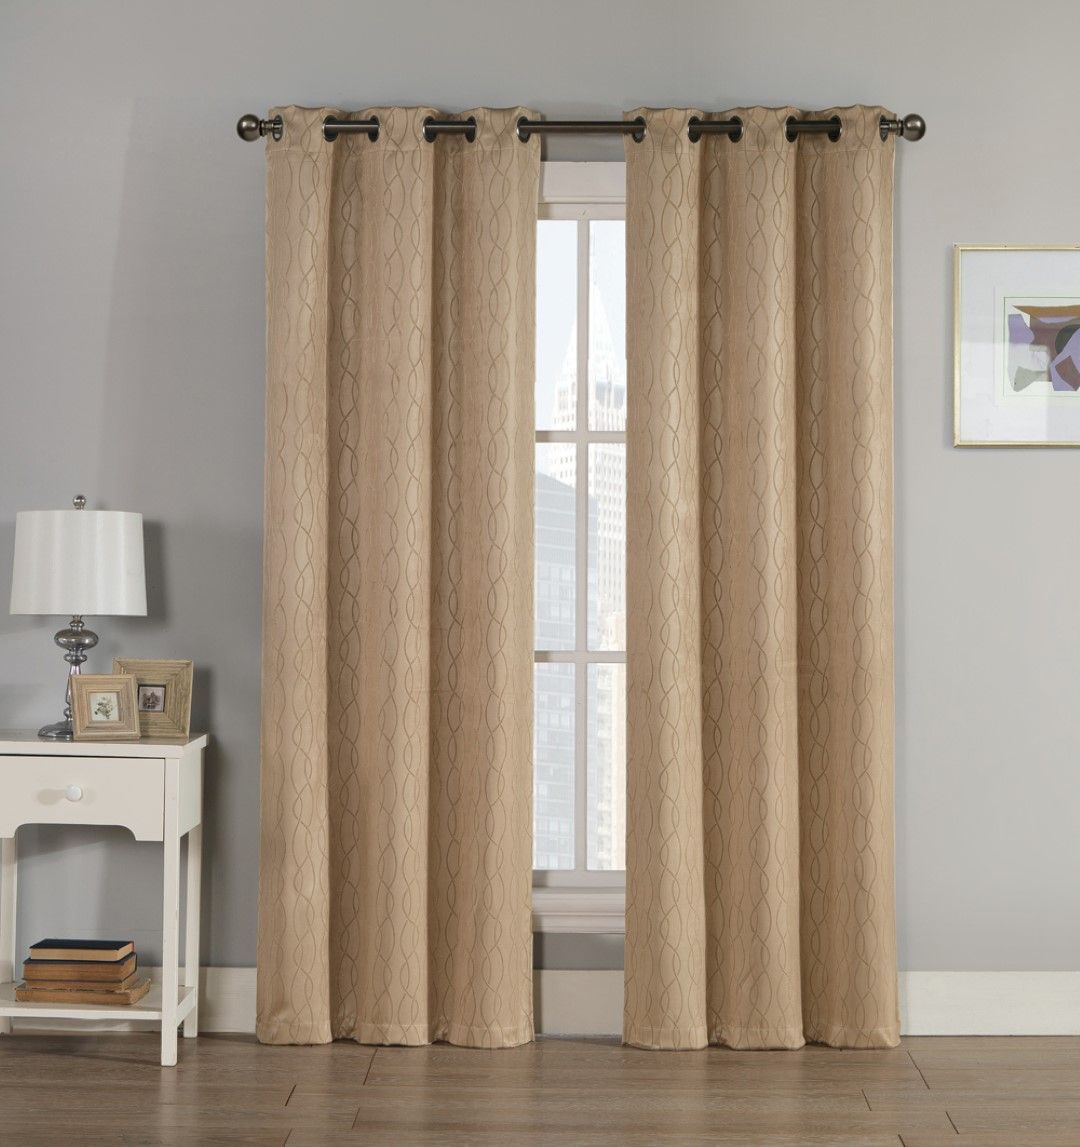 Textiles From Europe Ruby Blackout Embossed Panel Pair 76x84 Products Curtains Panel Curtains Blackout Curtains